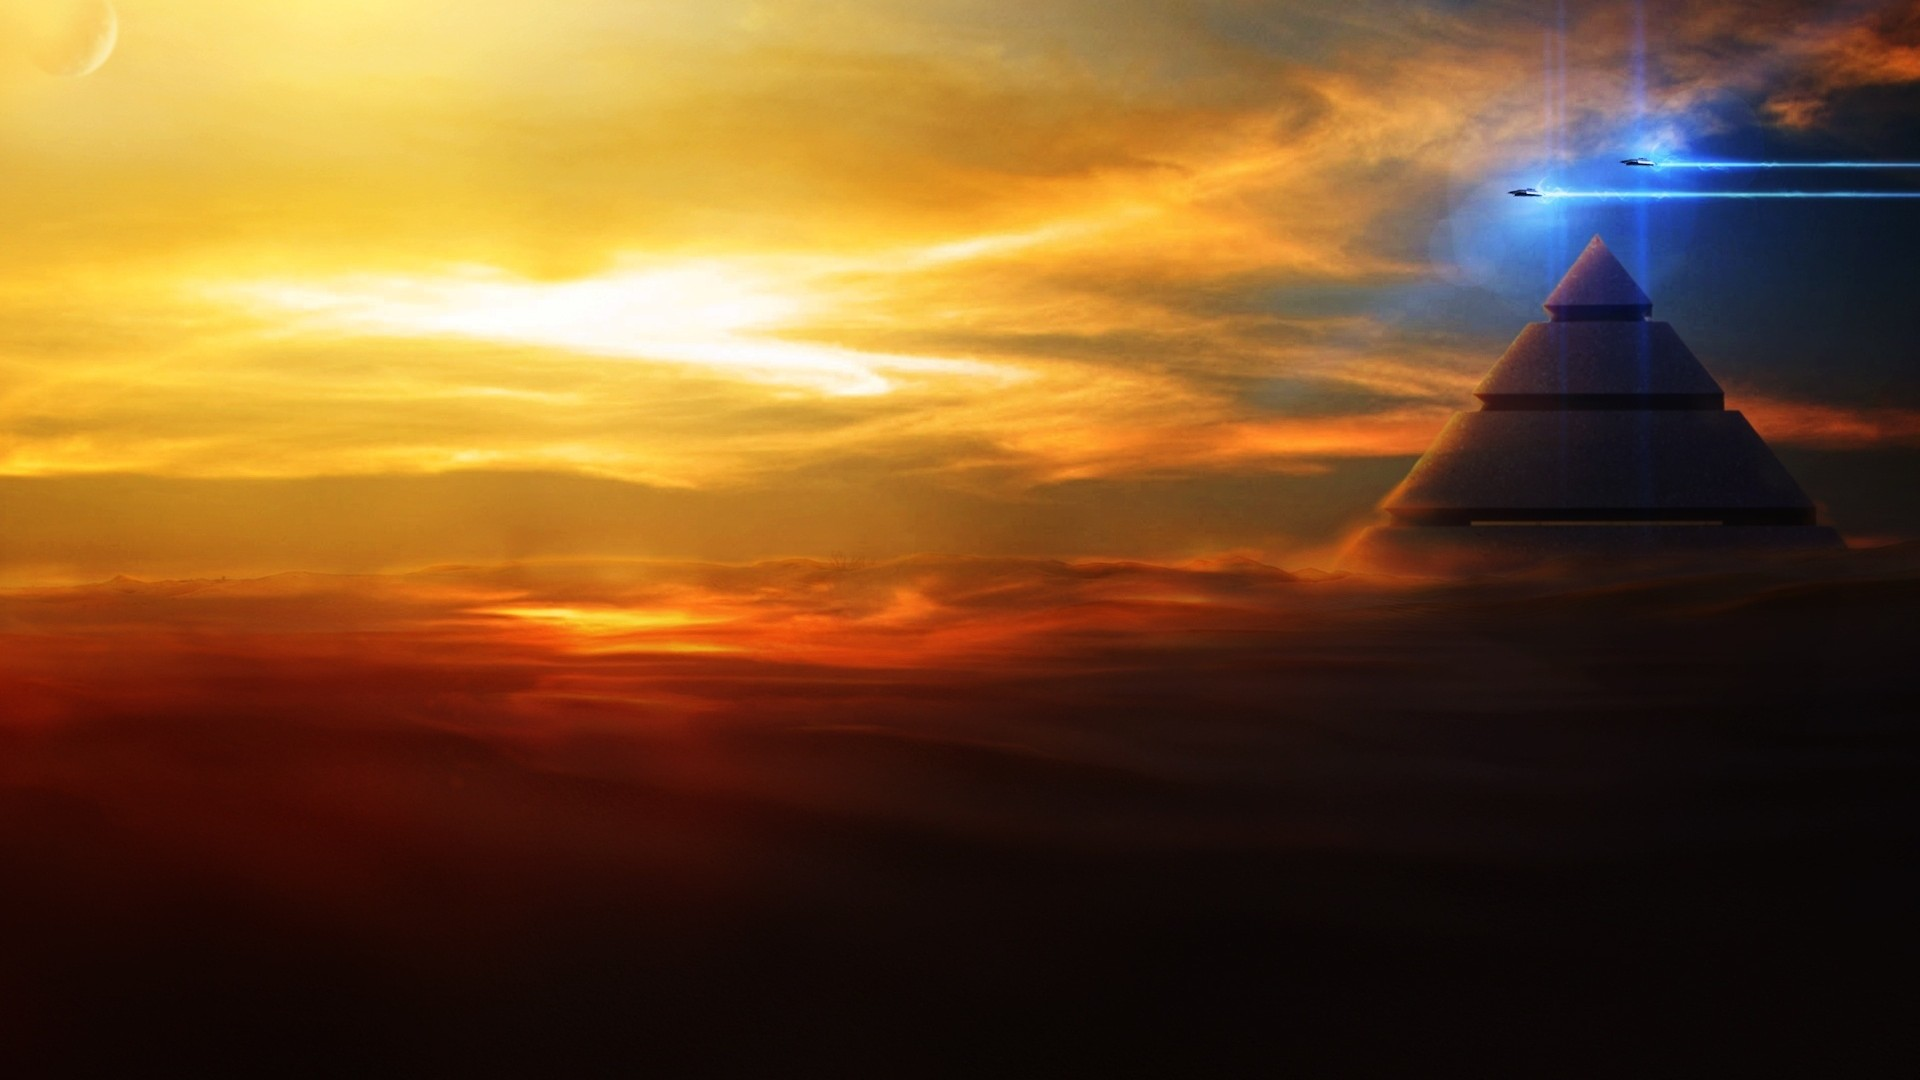 Egypt Pyramids Hd Wallpapers Sunset Pyramid Wallpaper High Definition High Quality